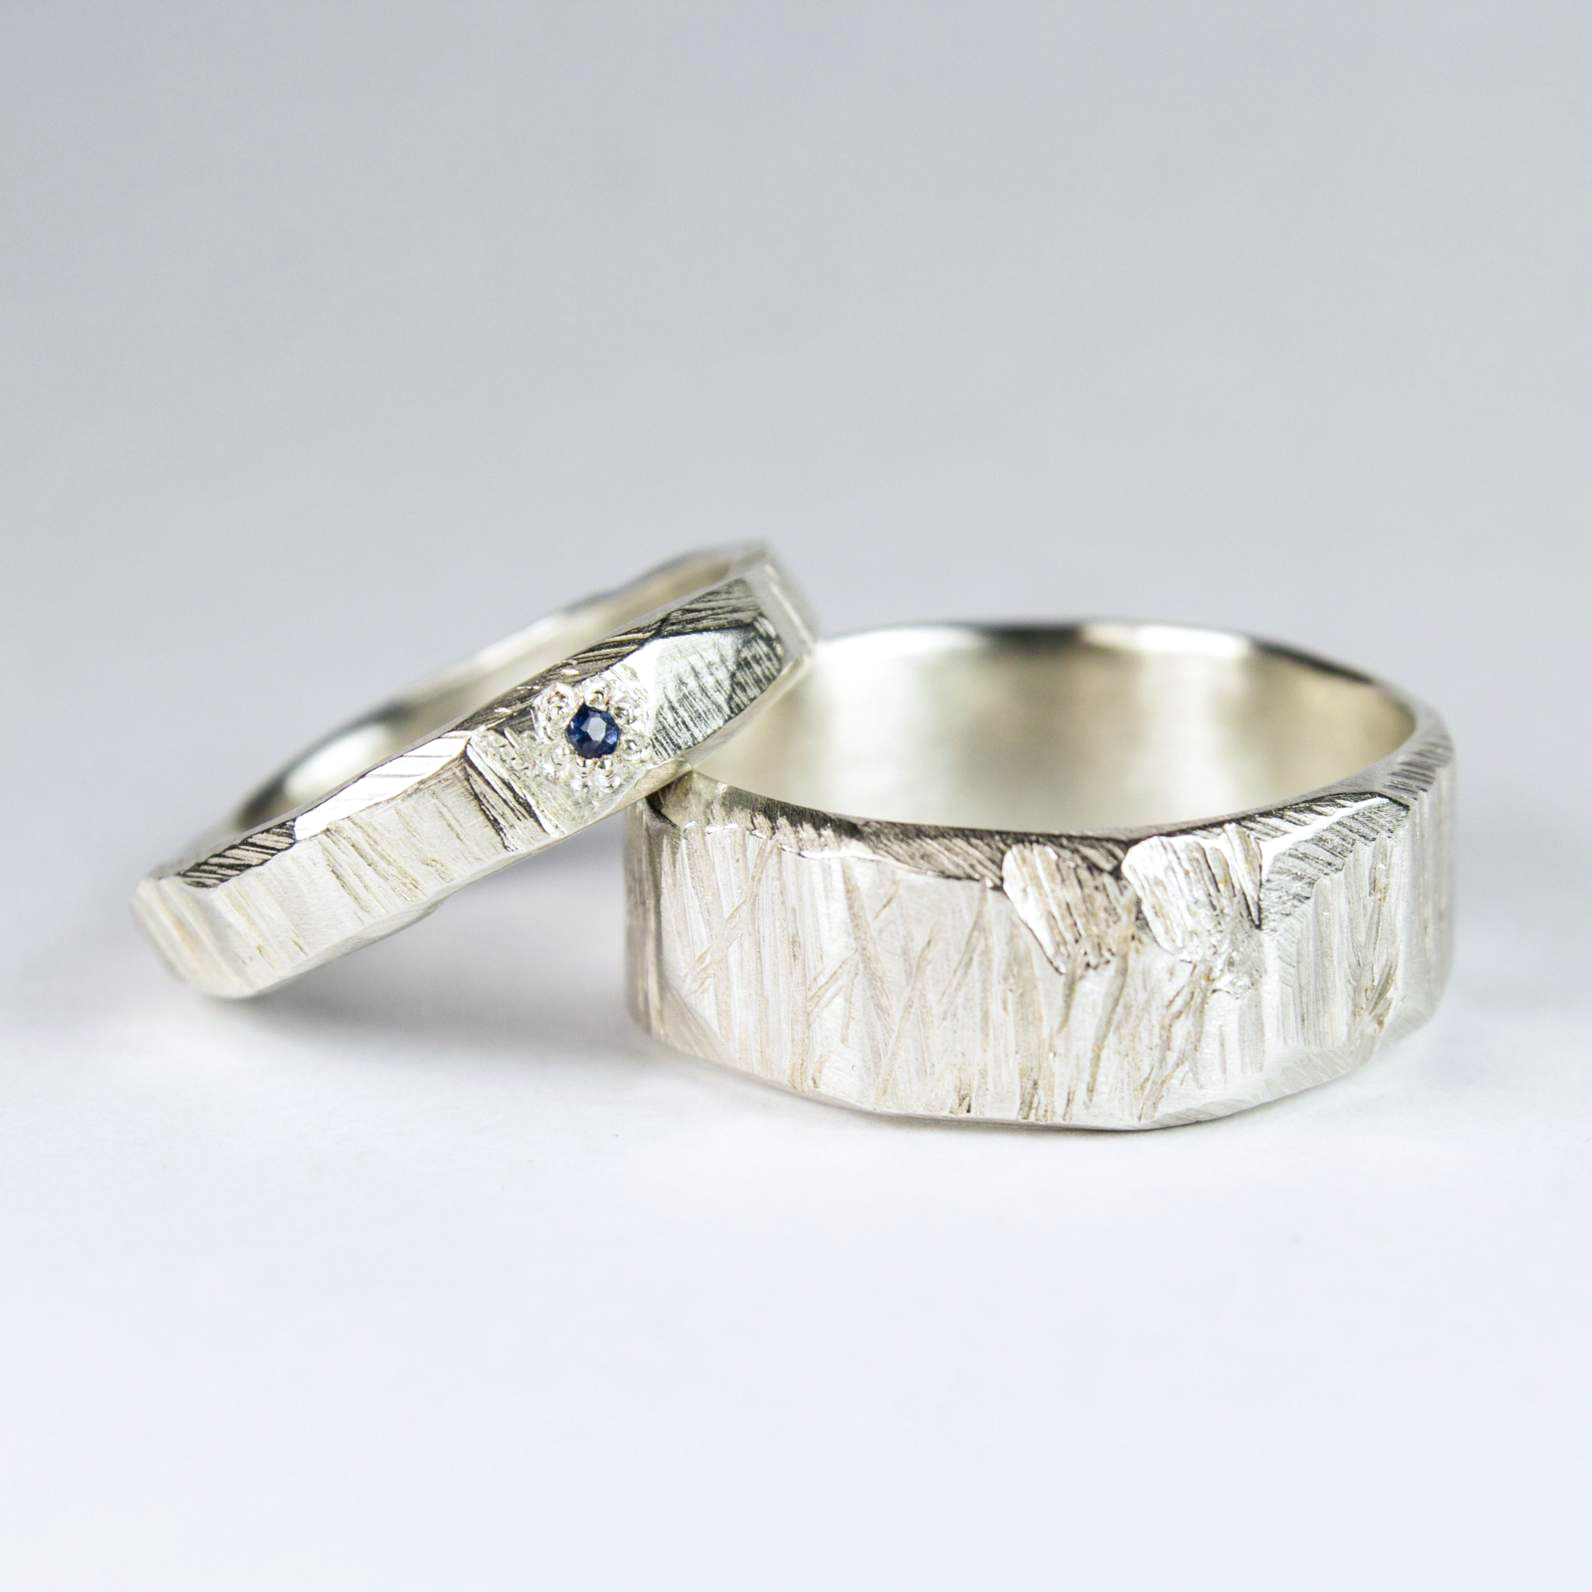 Bark textured rings in Sterling Silver, with Ceylon Sapphire